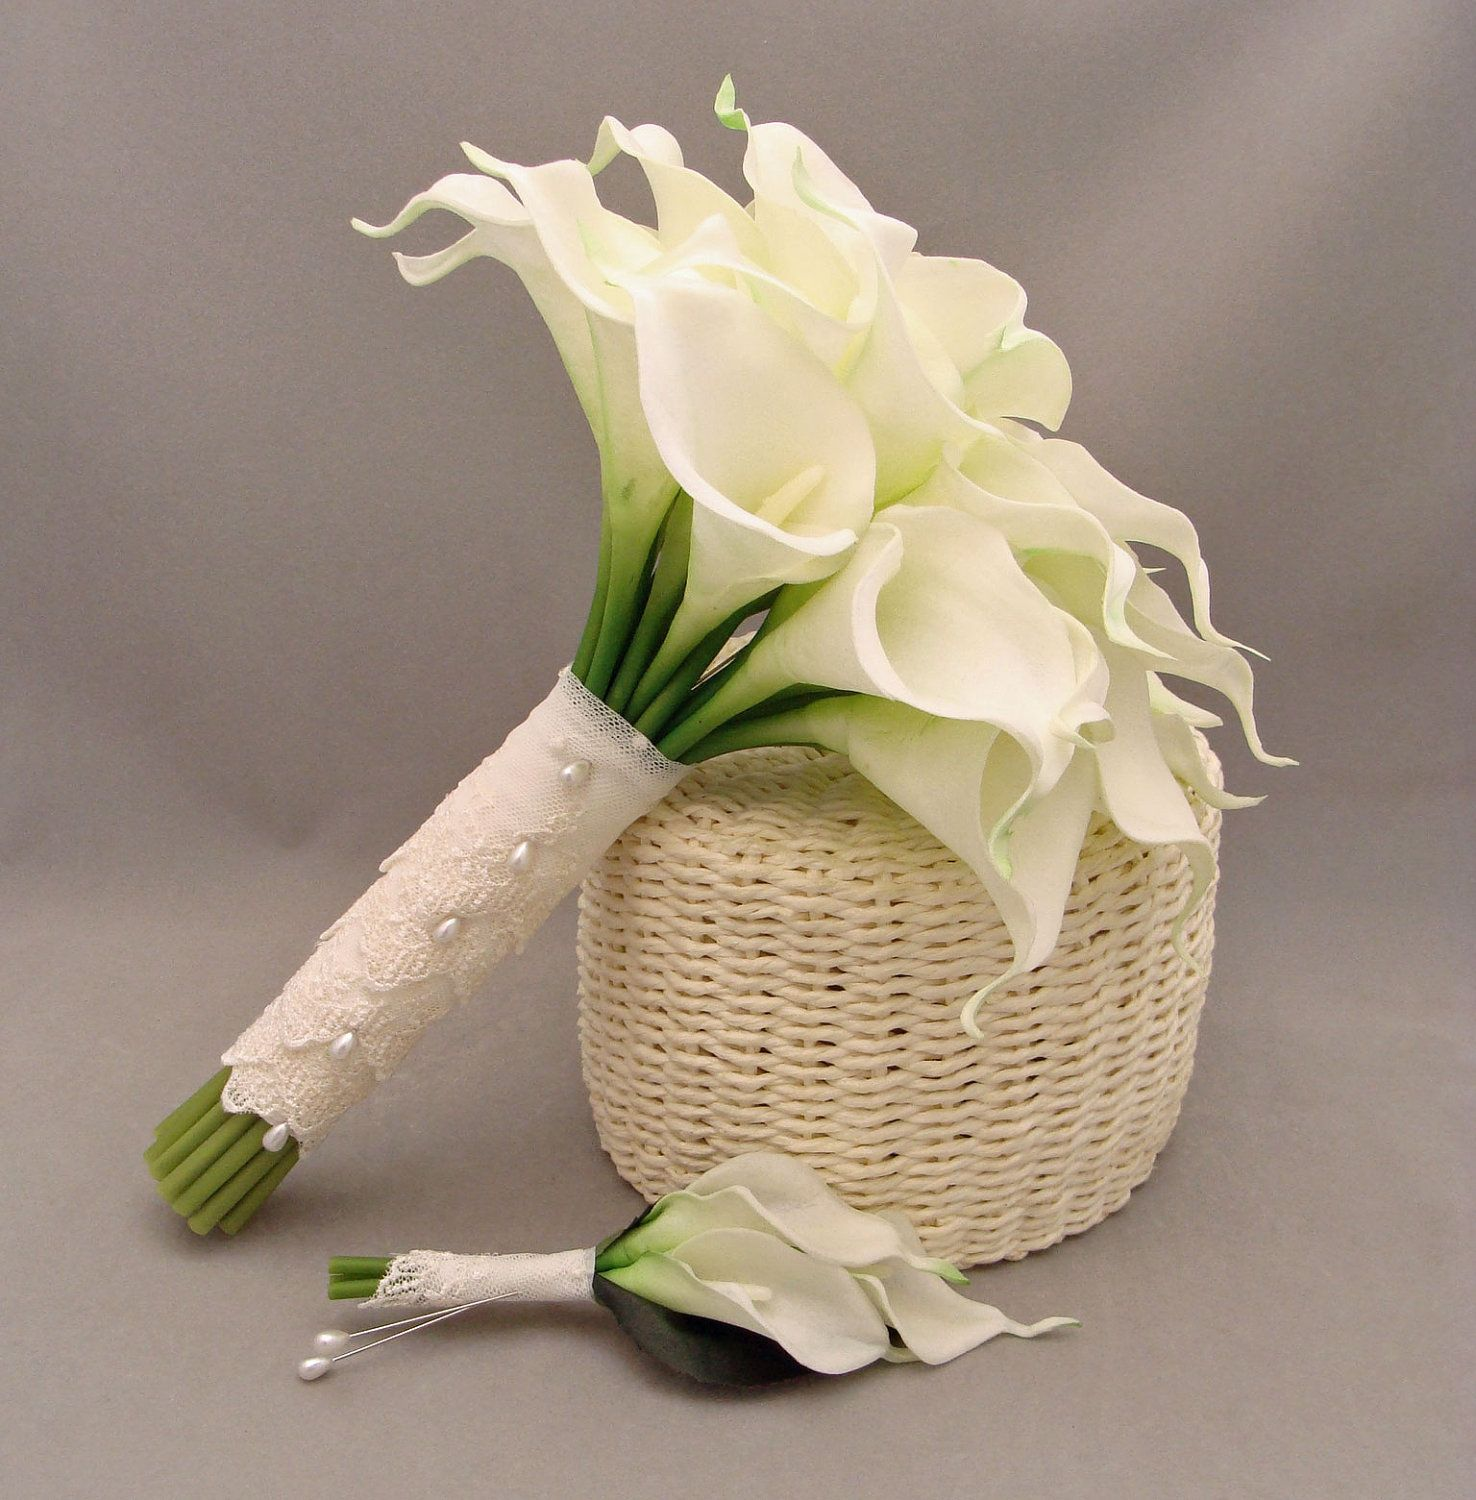 Real Touch Calla Lily Bridal Bouquet Groom S Boutonniere In White With Lace Wrap 120 00 Vi Lily Bouquet Wedding Calla Lily Bridal Calla Lily Bouquet Wedding